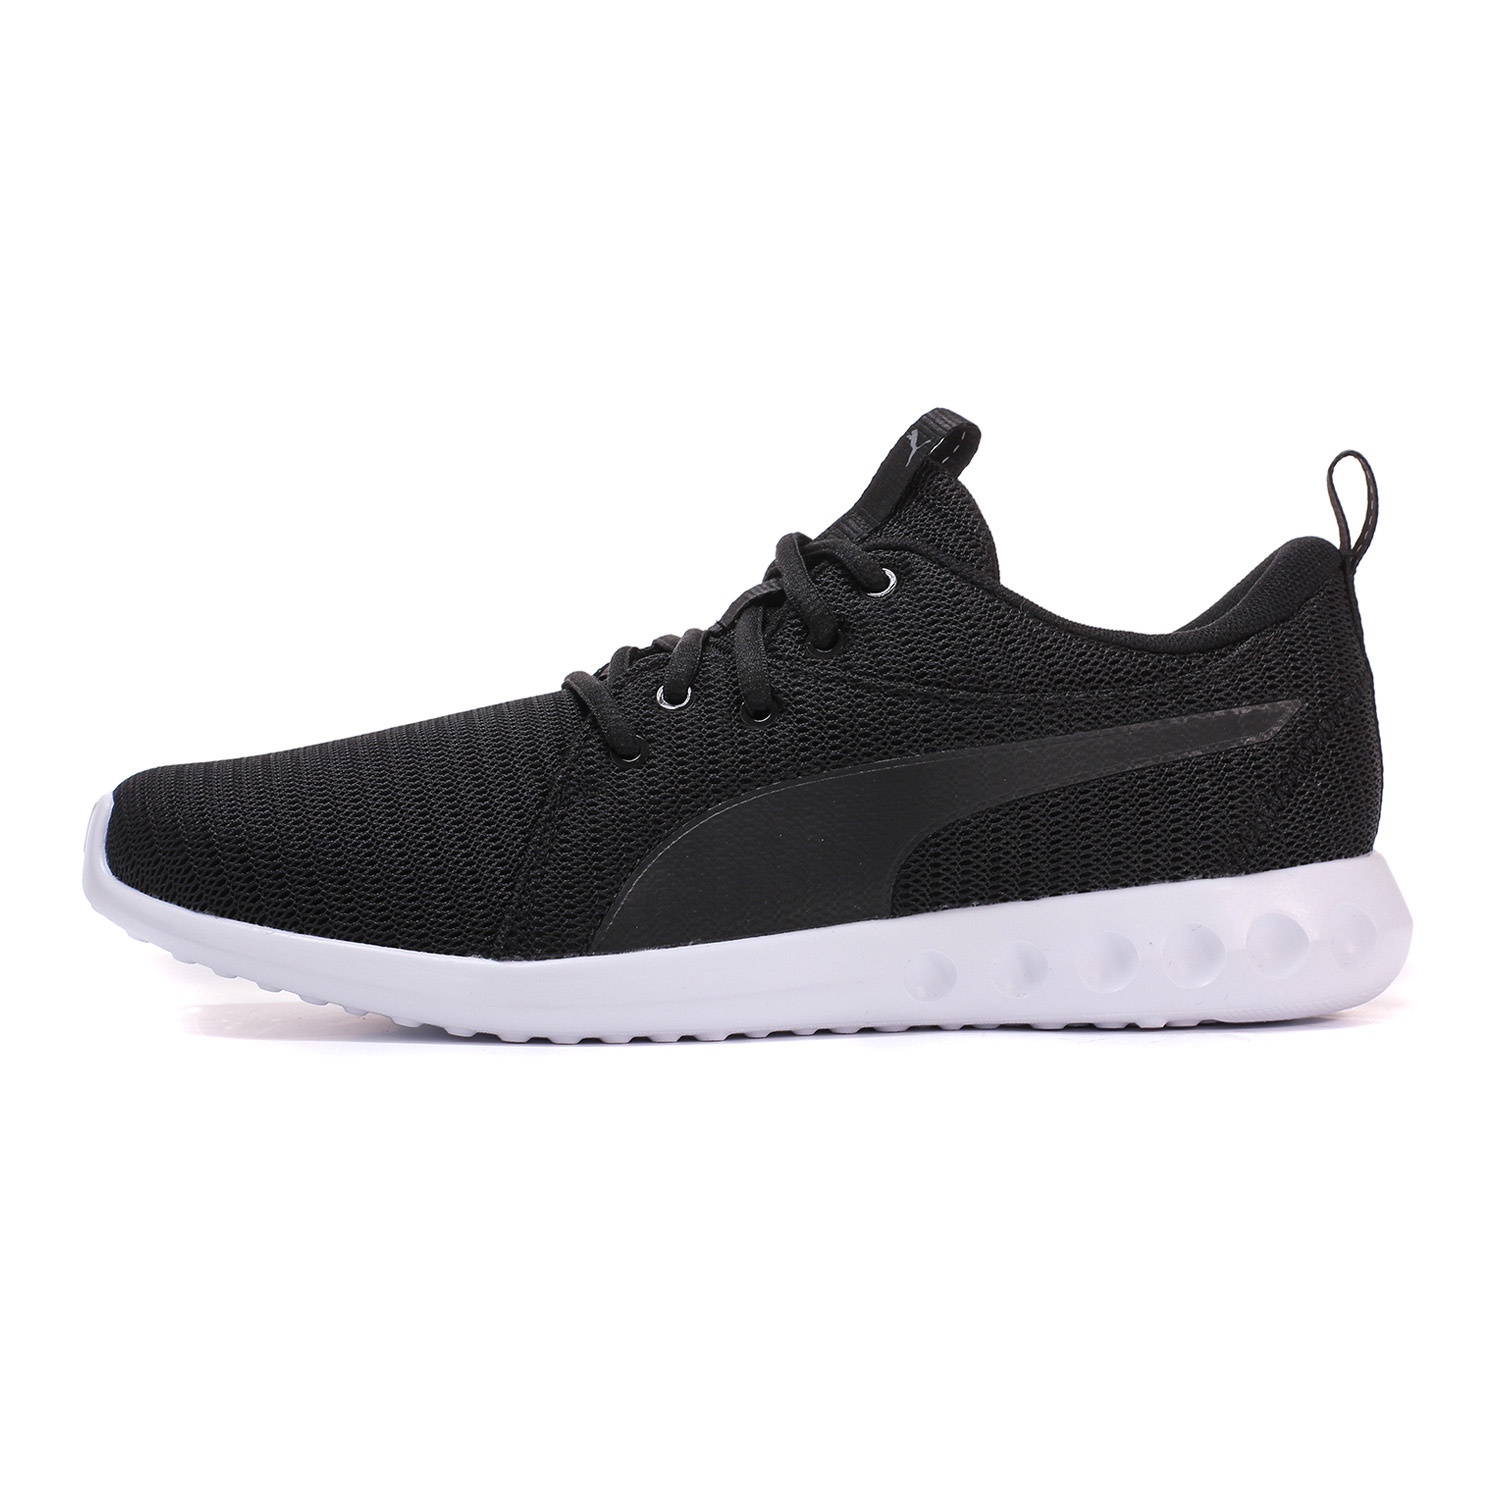 Puma Puma men s shoes 2017 new fitness running shoes mesh breathable  19003702 a3fbae371